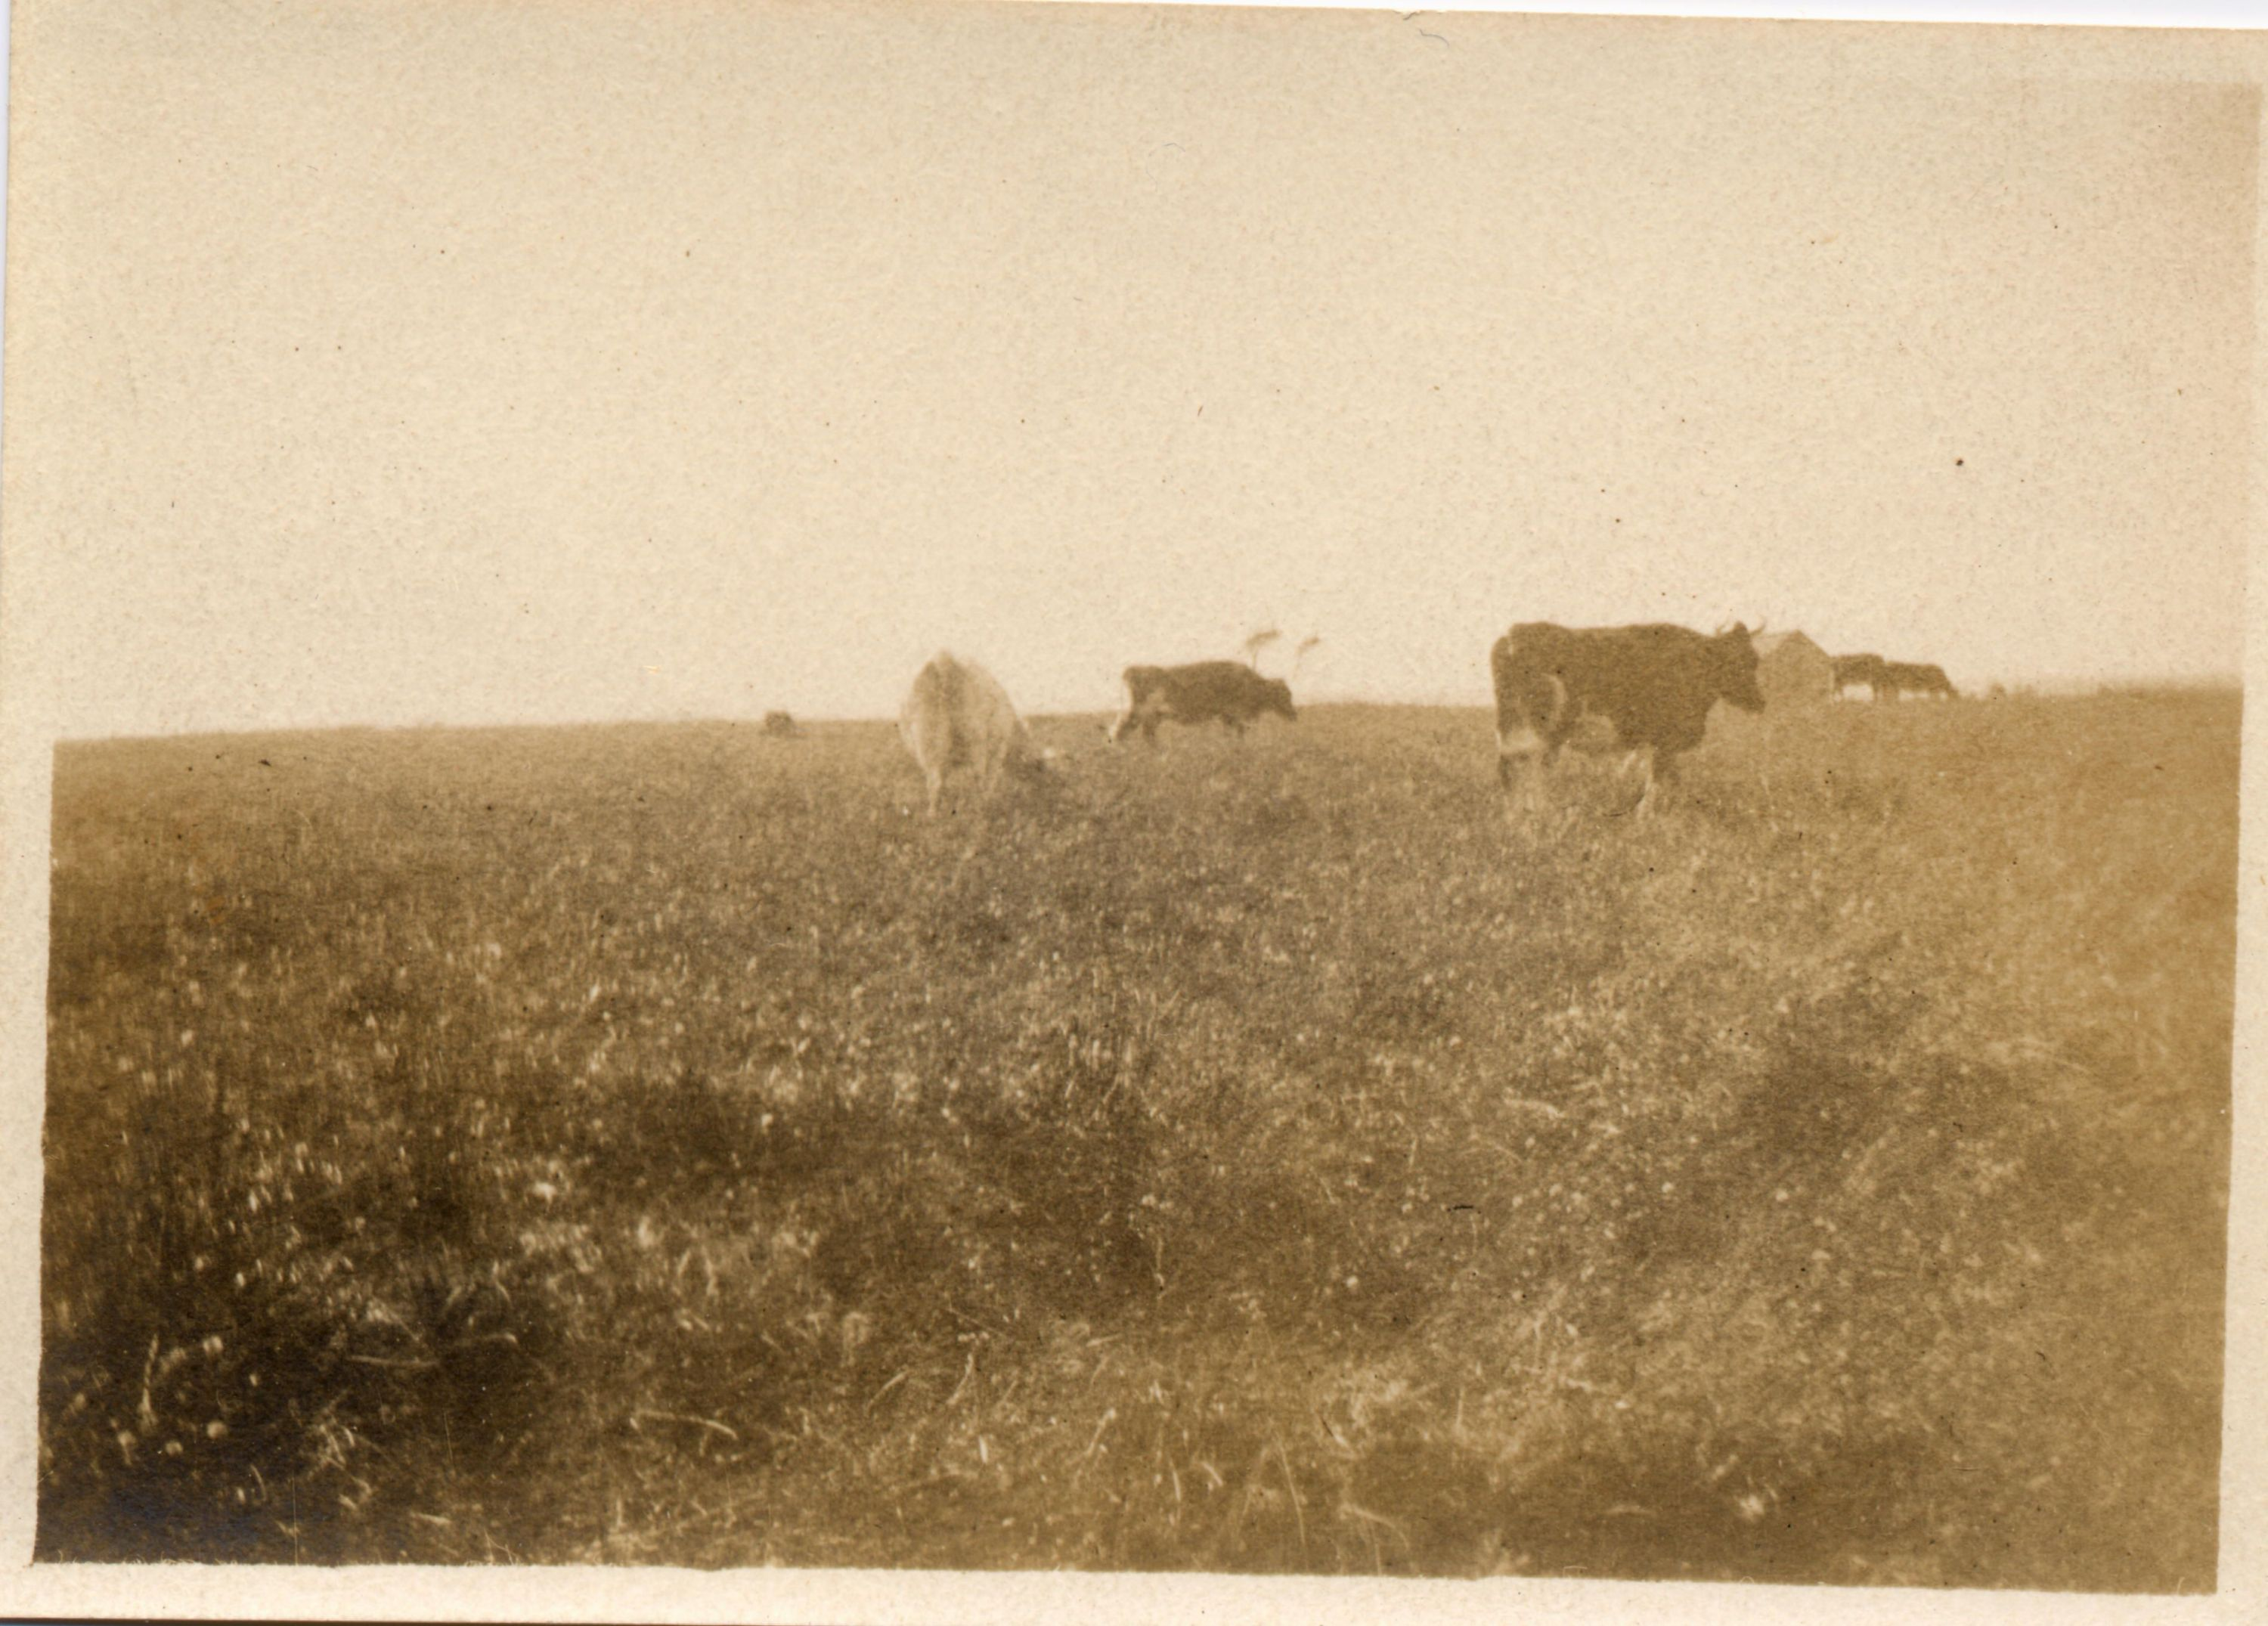 Agricultural Images - Little Compton Historical Society